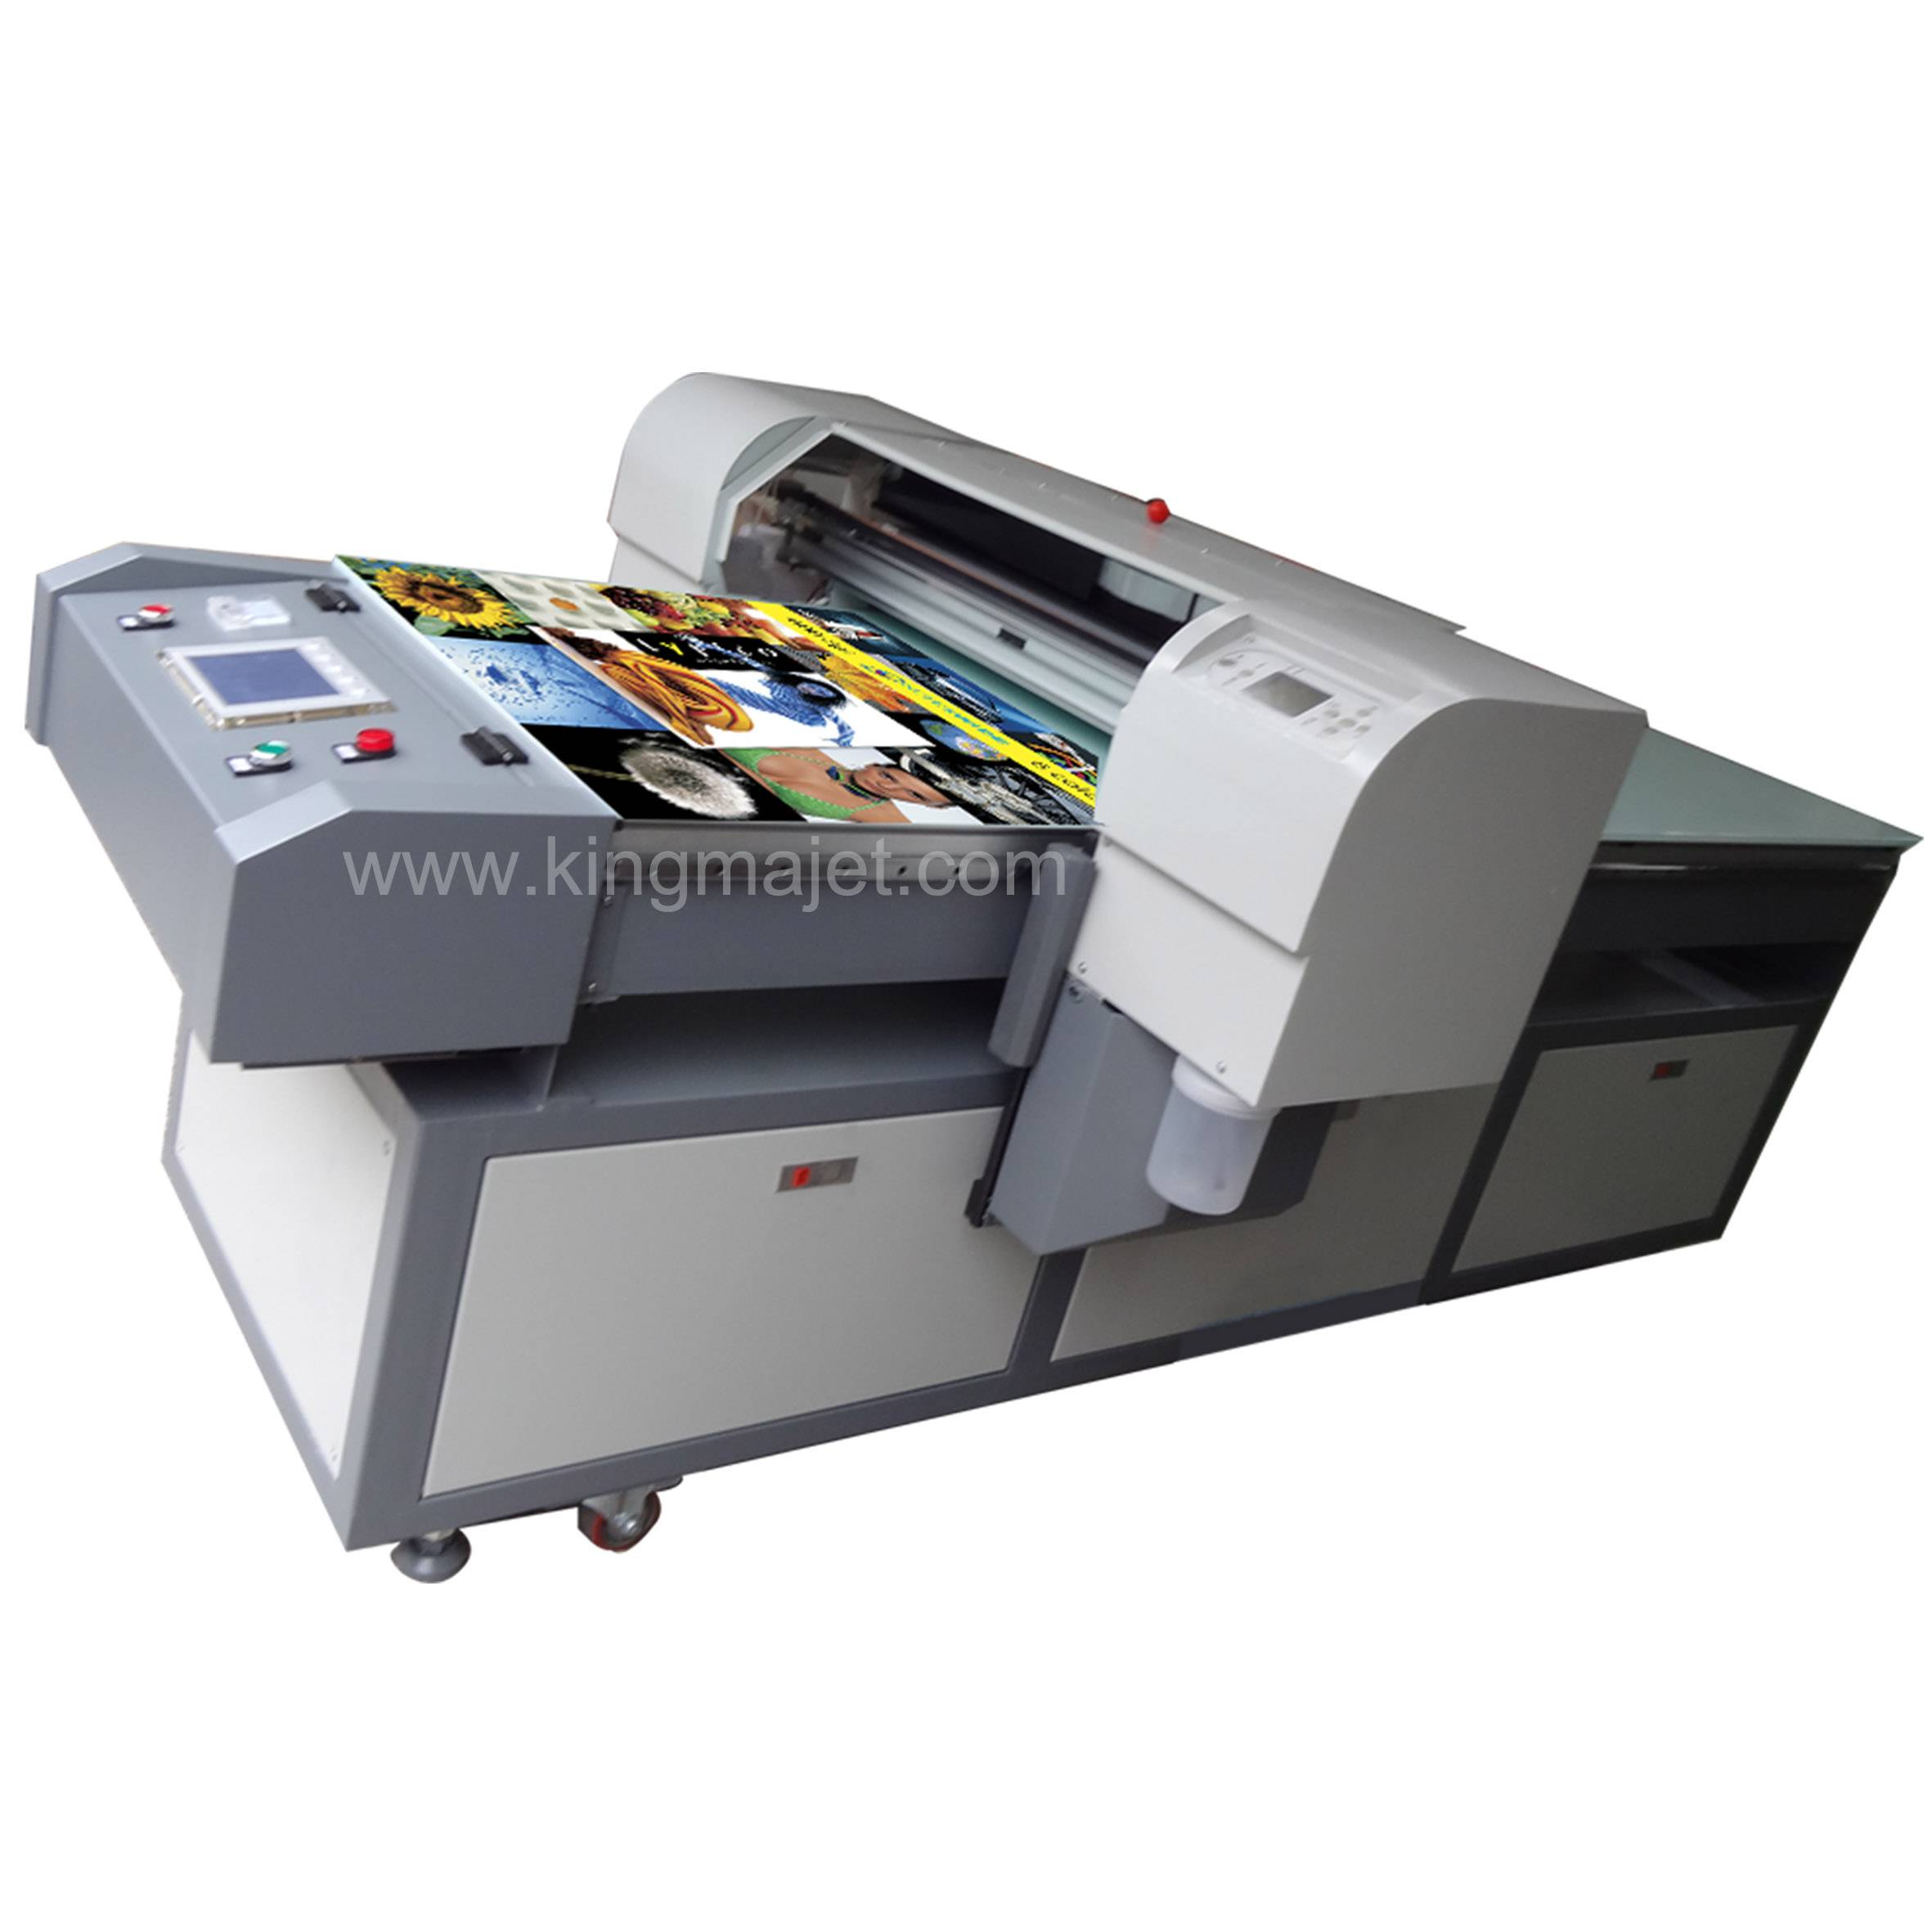 Weihang MJ6018-8 color Digital Flatbed Printer for Gift Items